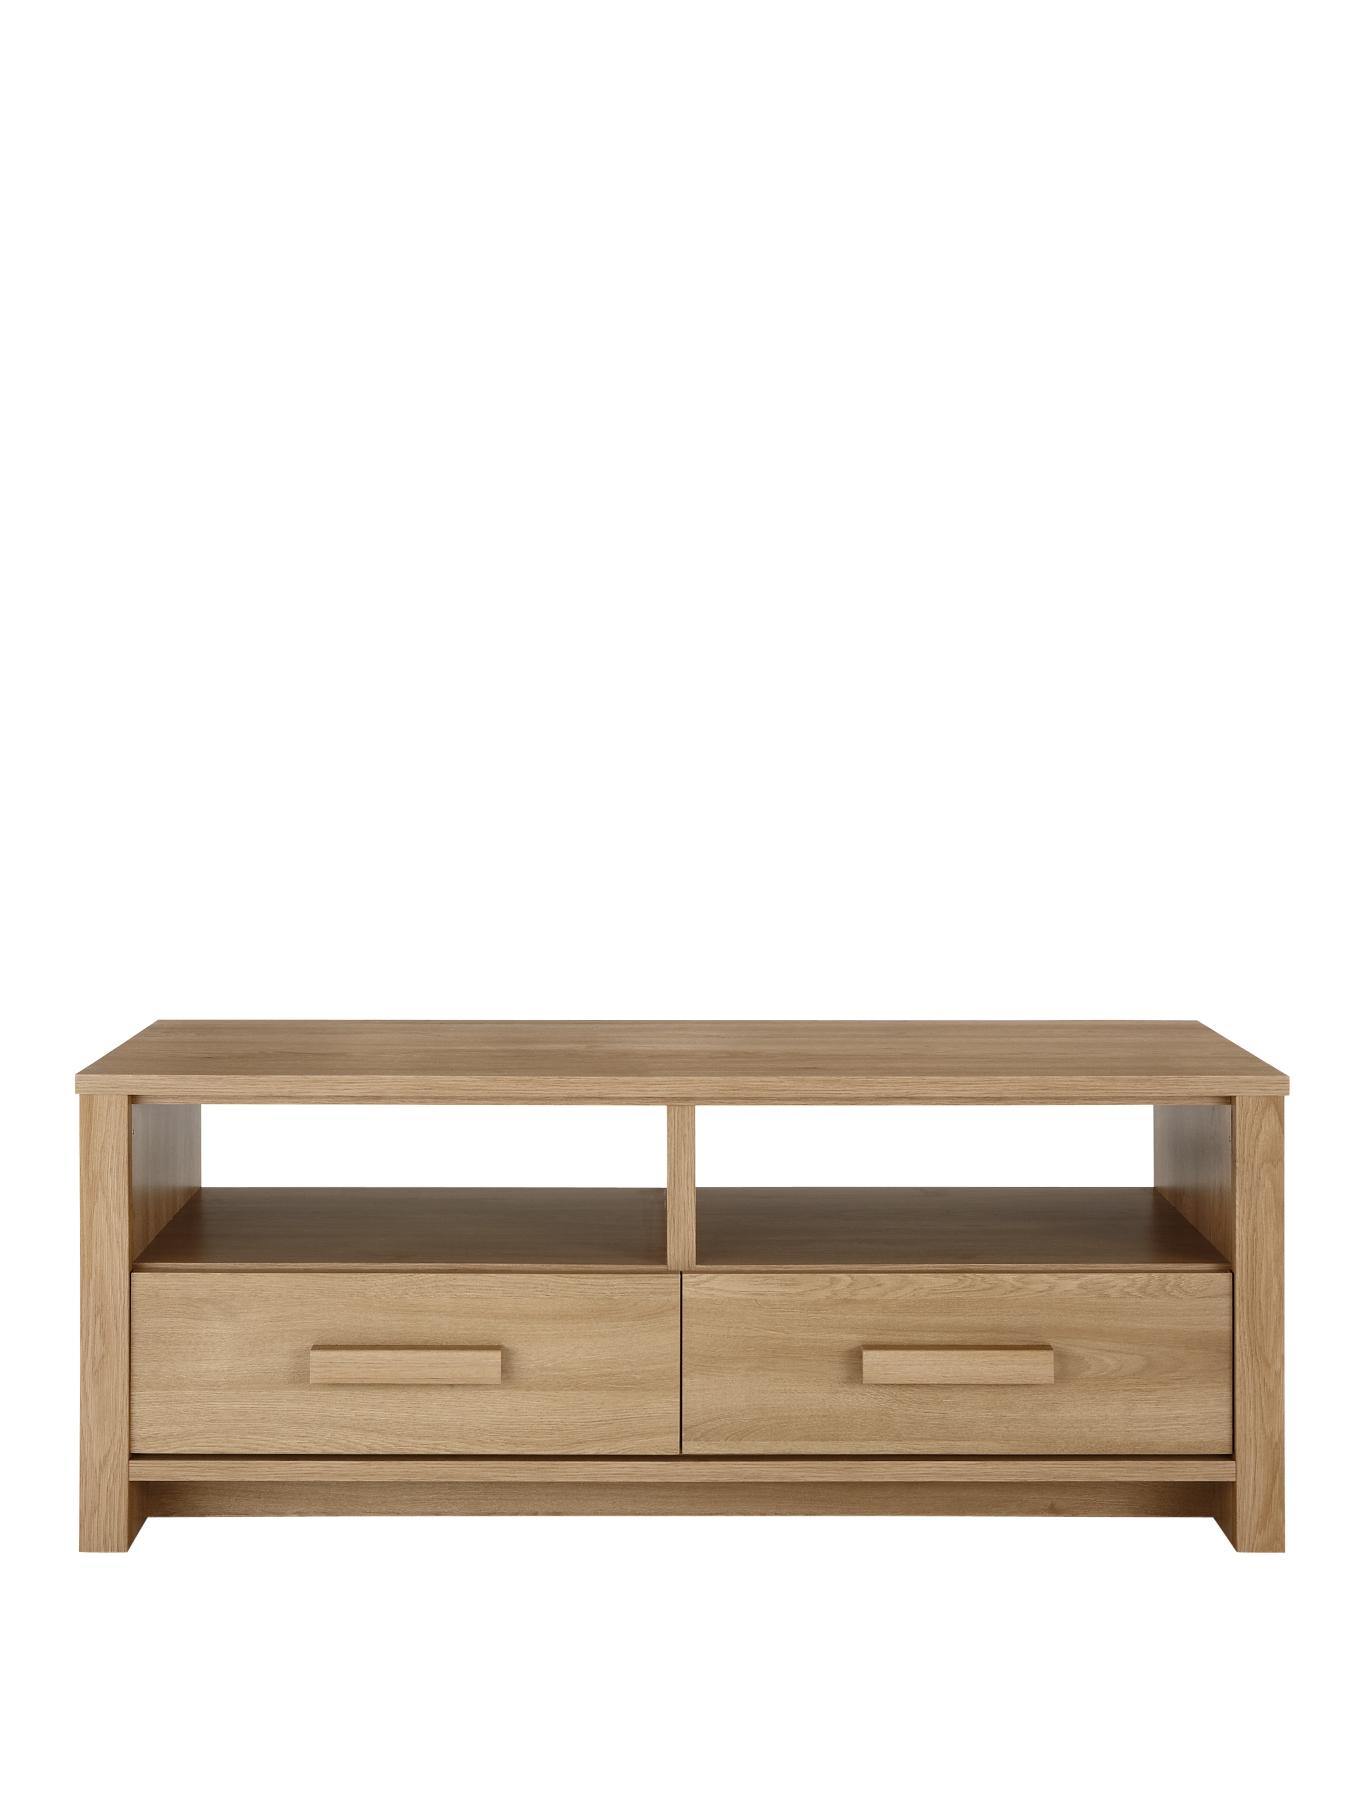 Tuscany Ready Assembled TV Unit - fits up to 50 inch TV